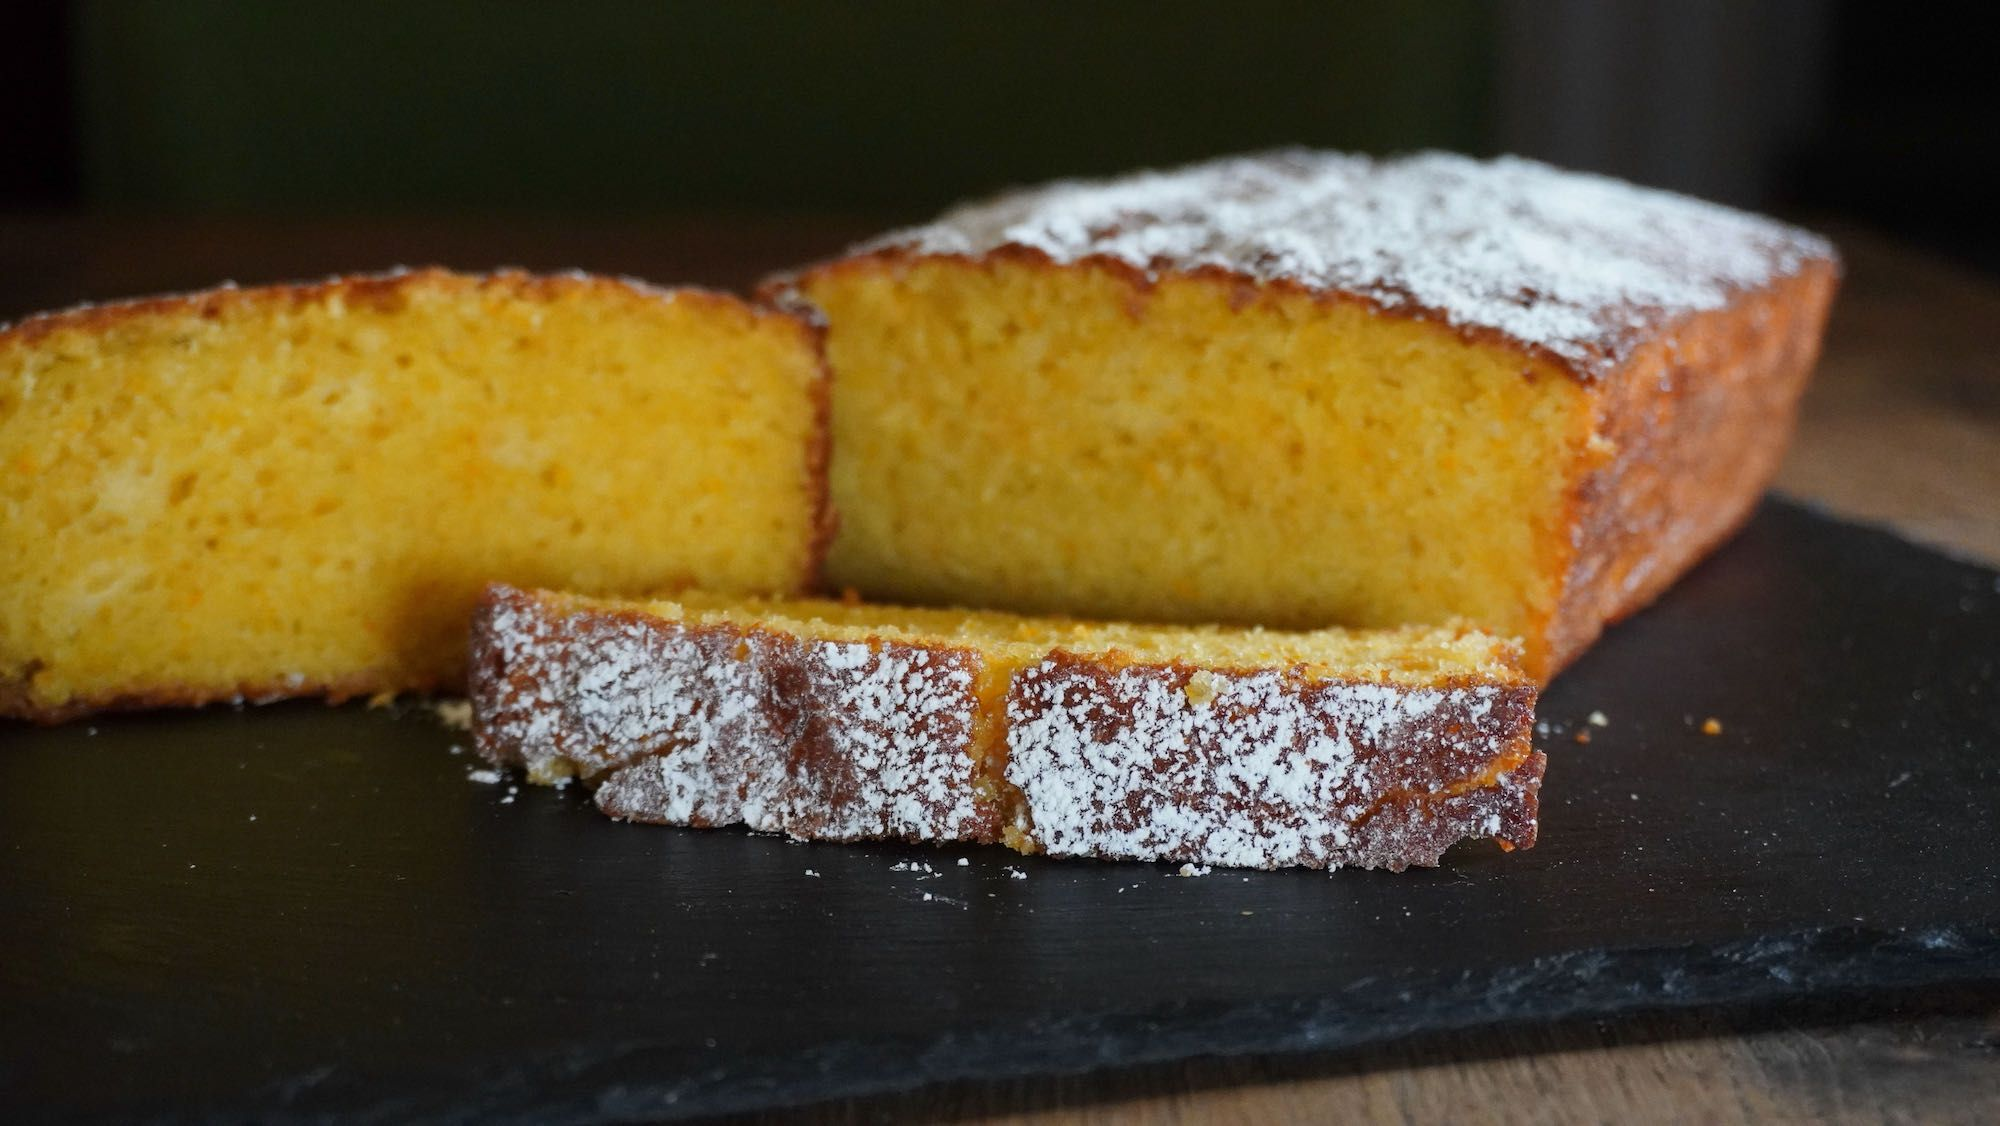 How to Make An Easy Orange Loaf Cake